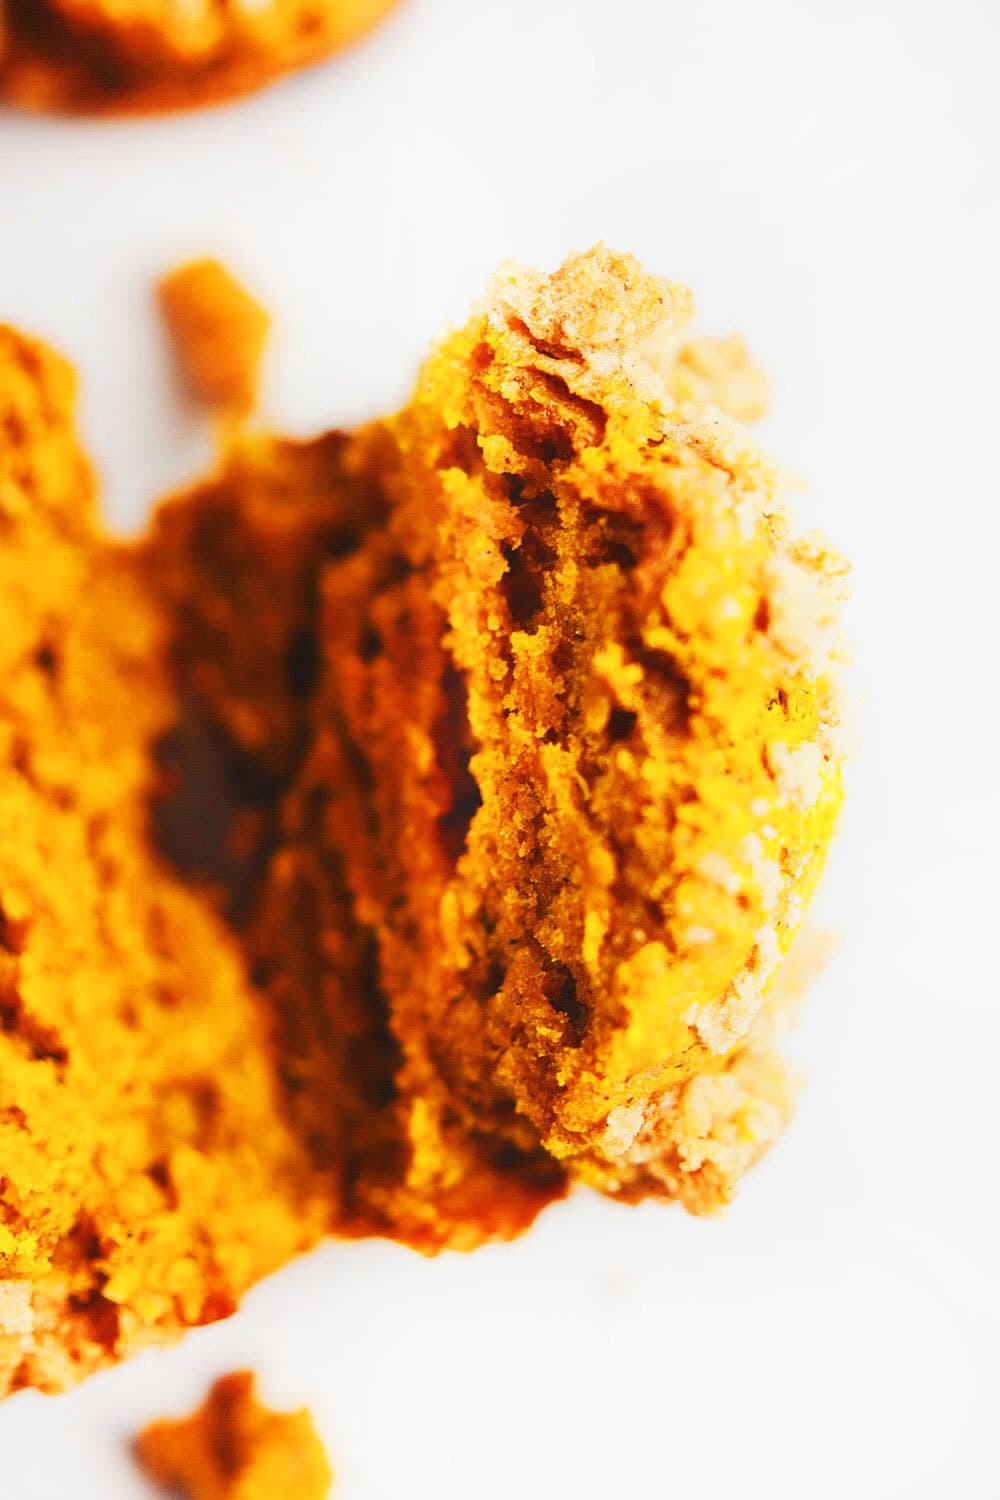 Fluffy Pumpkin Crumb Muffins - One of my favorite pumpkin recipes to make! Super flavorful, fluffy pumpkin muffins that are easy to make for any Holiday gathering! SOyummy. | asimplepalate.com